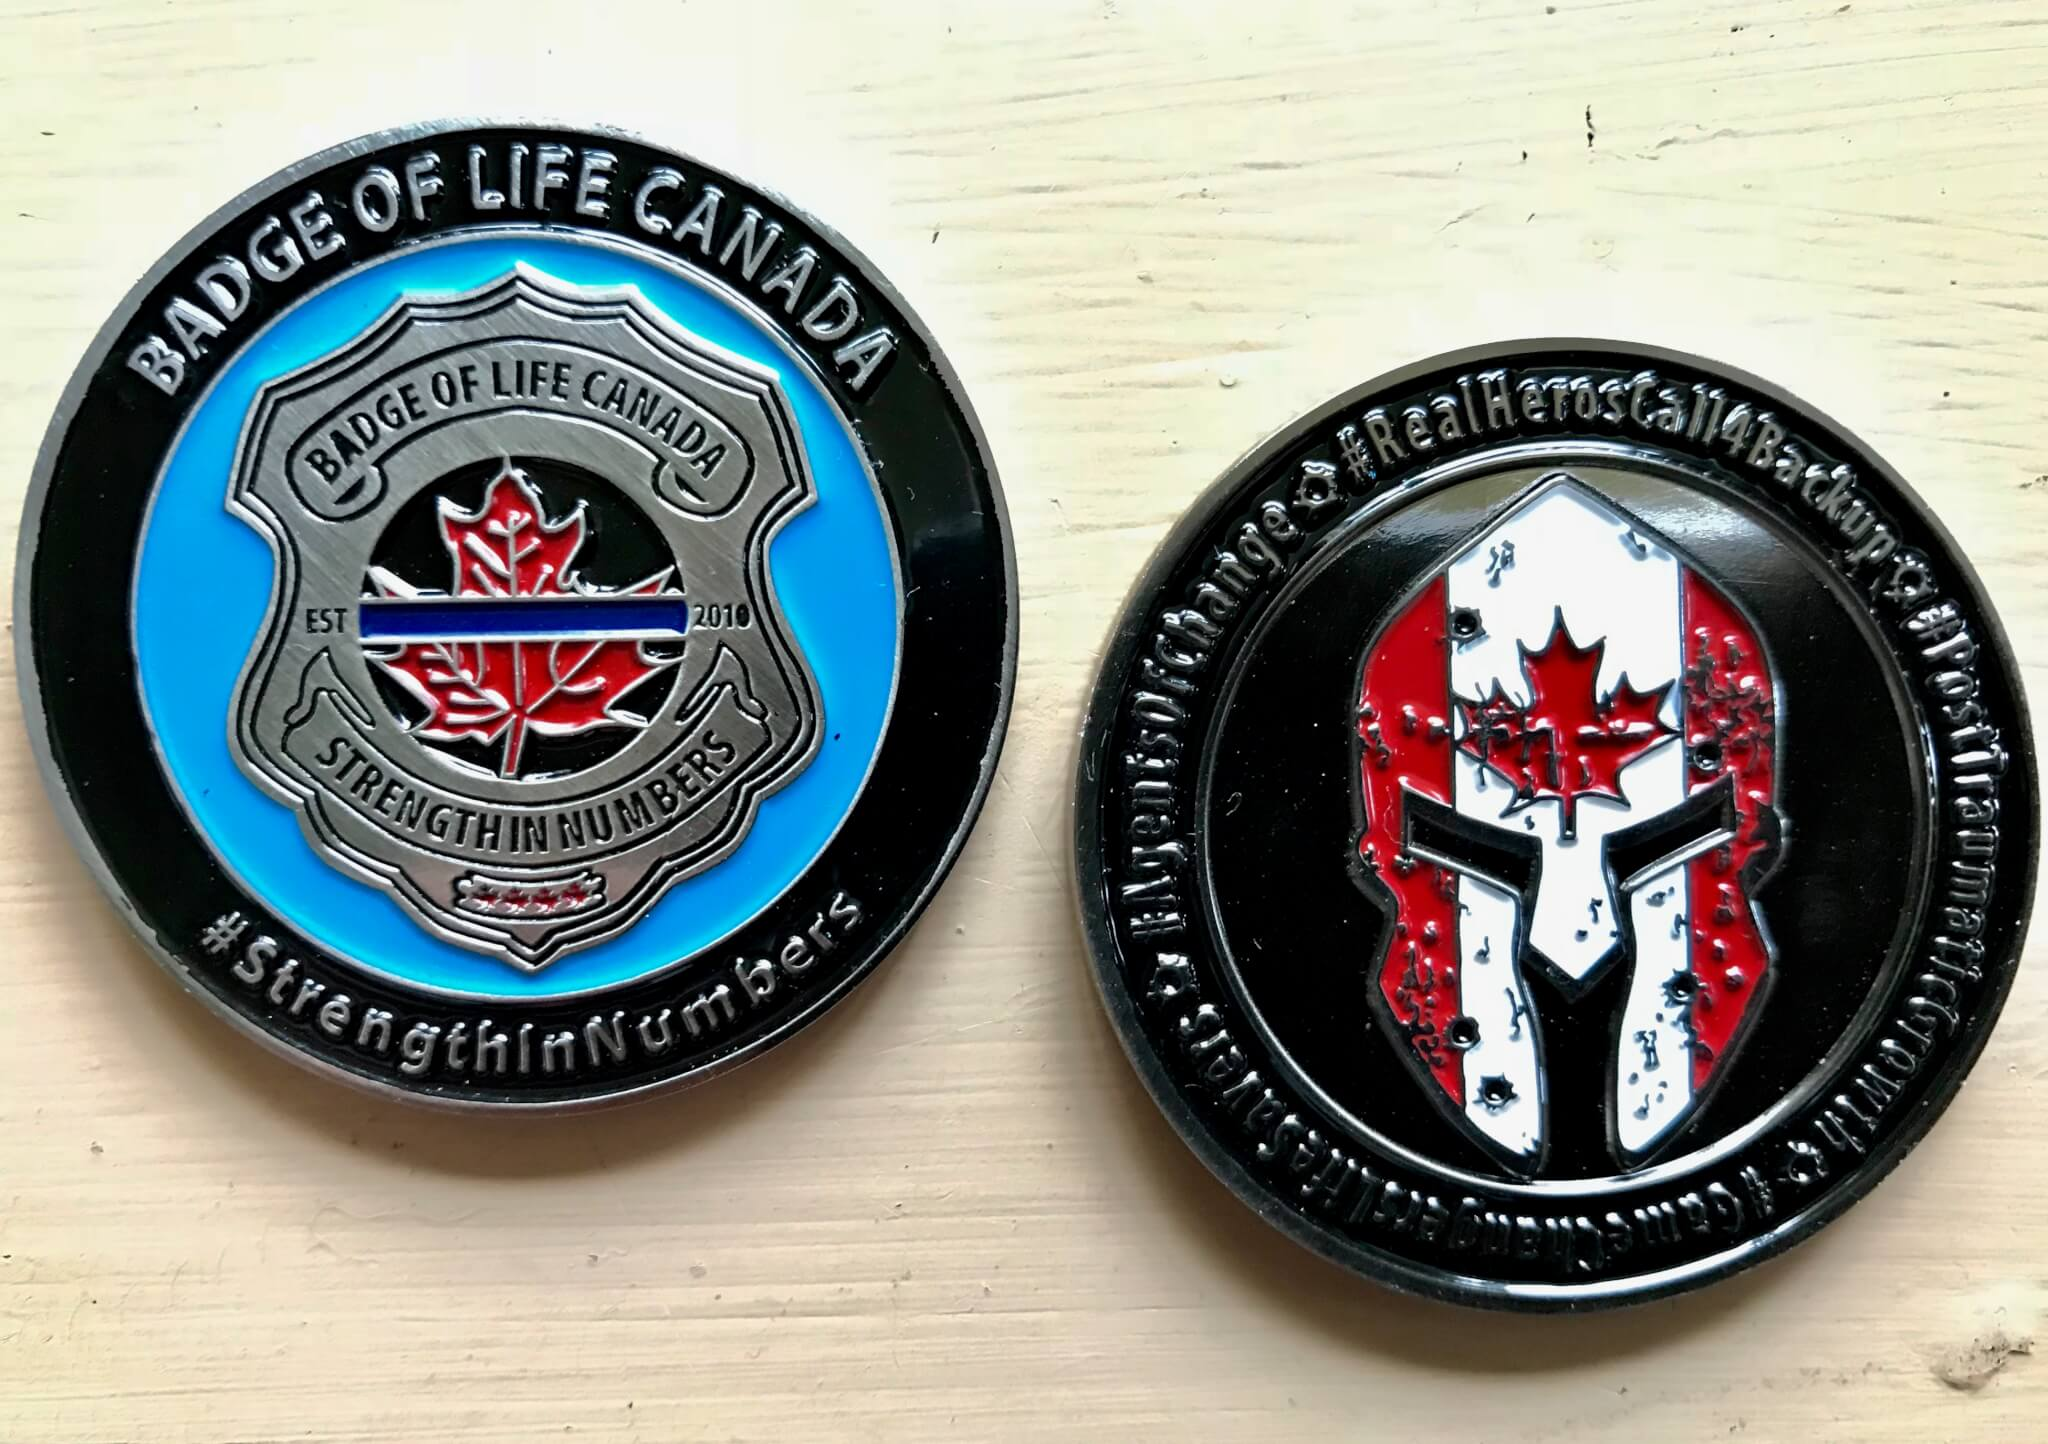 Badge of Life Challenge Coin